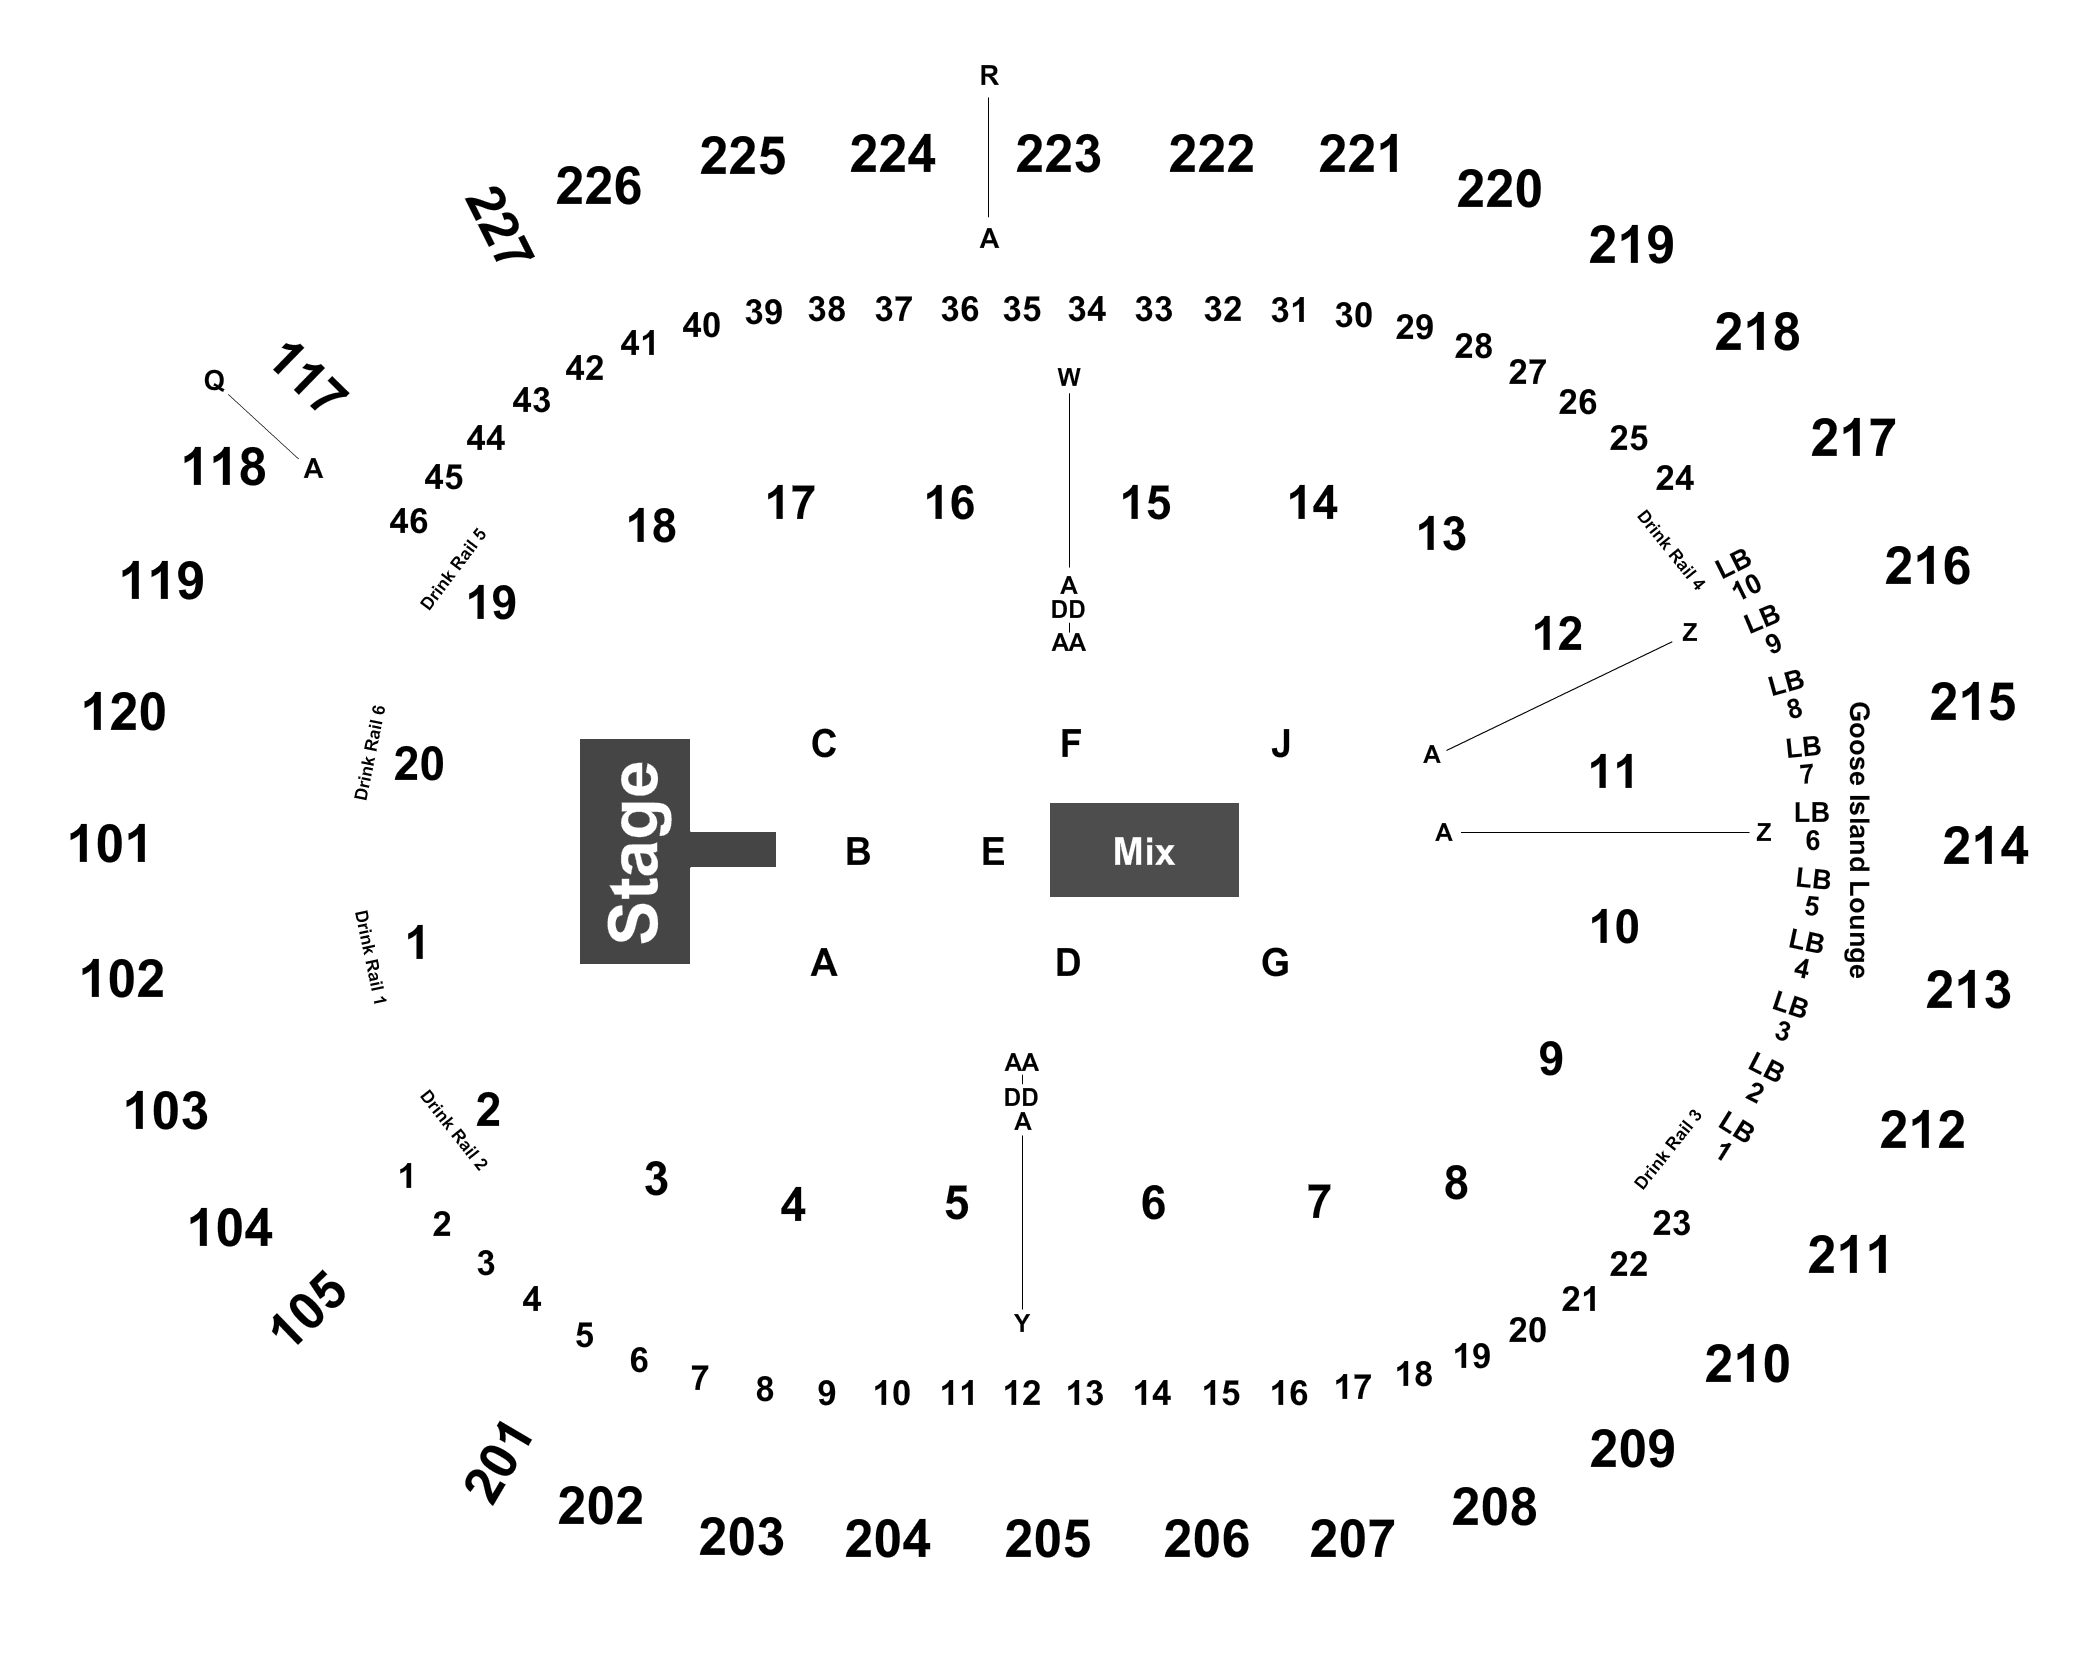 Journey def leppard tickets at t mobile arena on sept 8 2018 full map kristyandbryce Choice Image